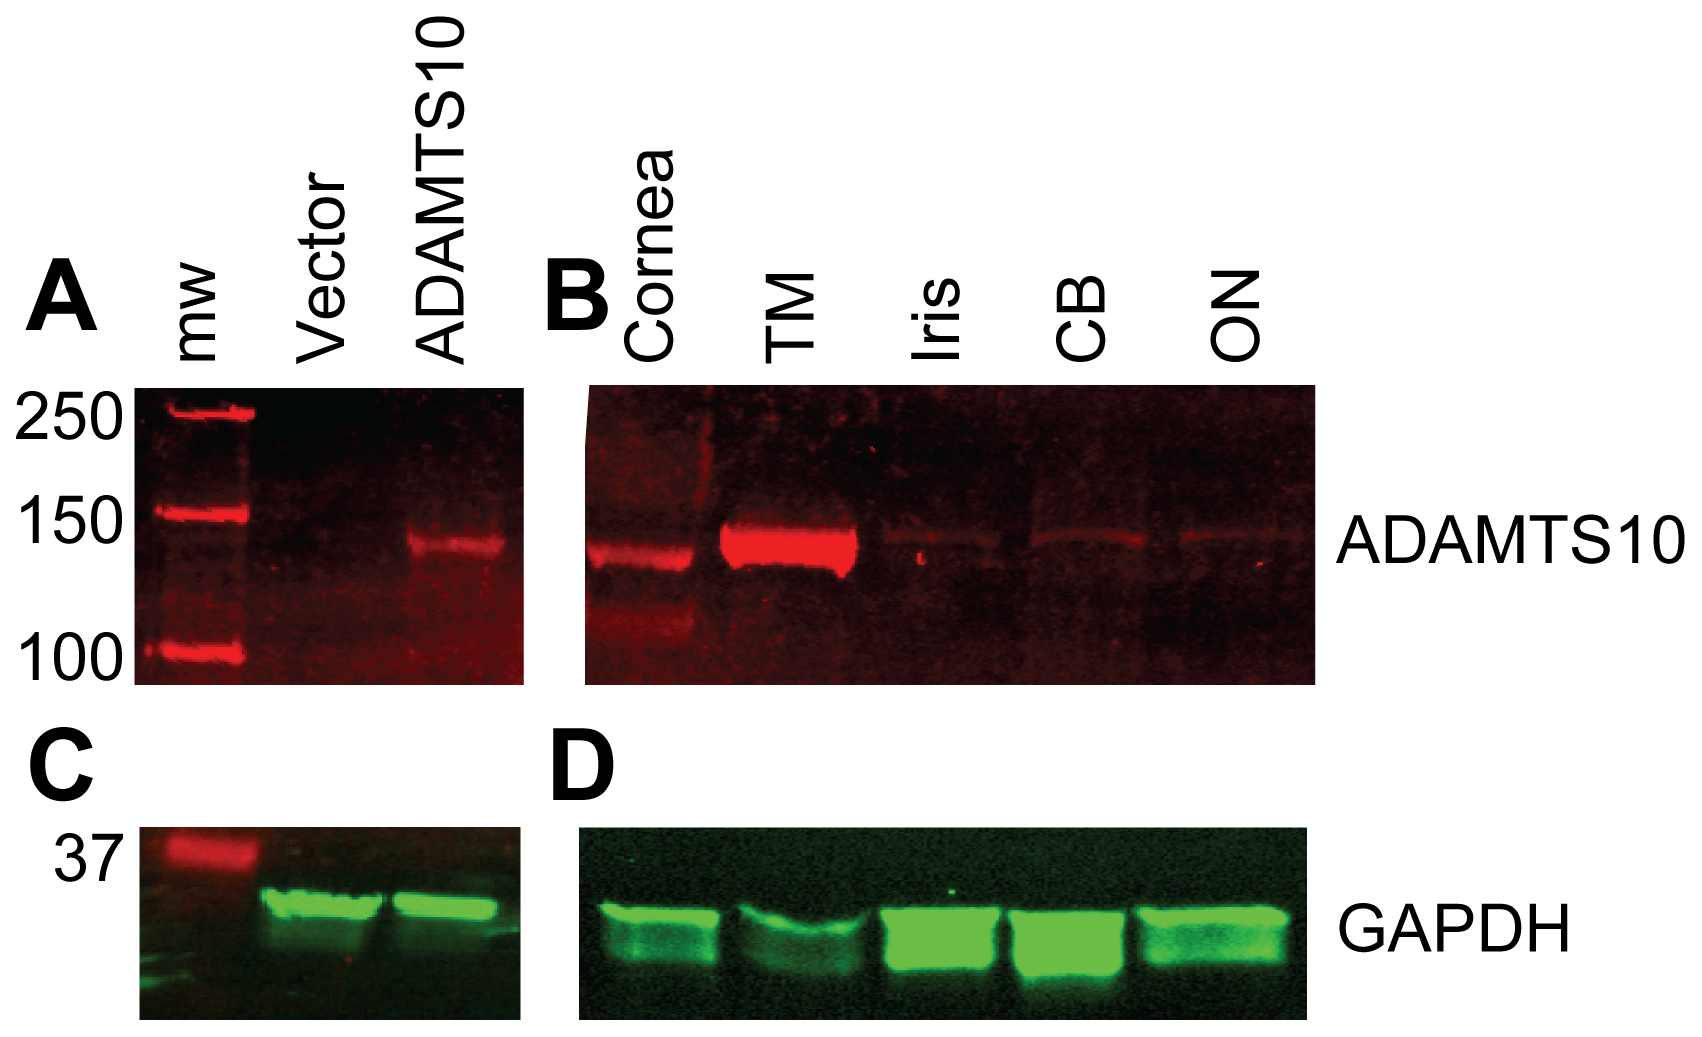 ADAMTS10 protein is highly expressed in the trabecular meshwork.